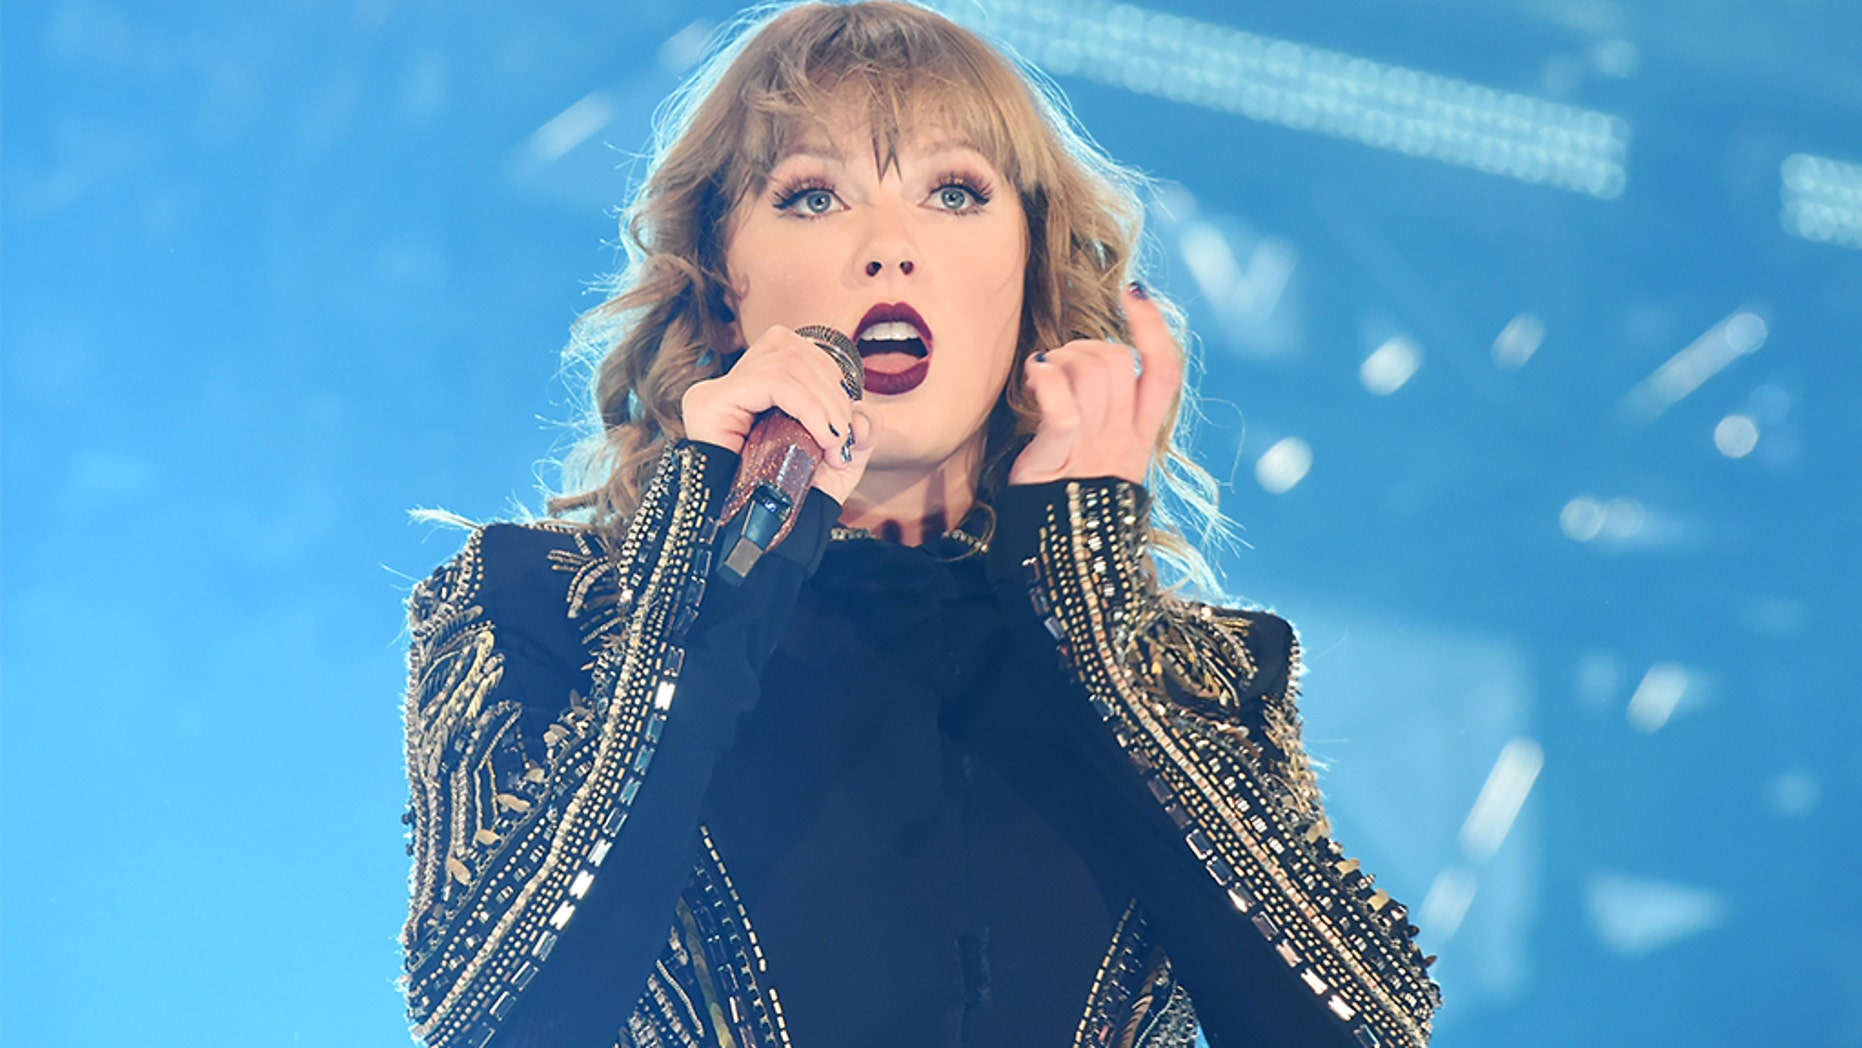 Taylor Swift Used Facial-Recognition Tech On Unknowing Fans To Find Stalkers